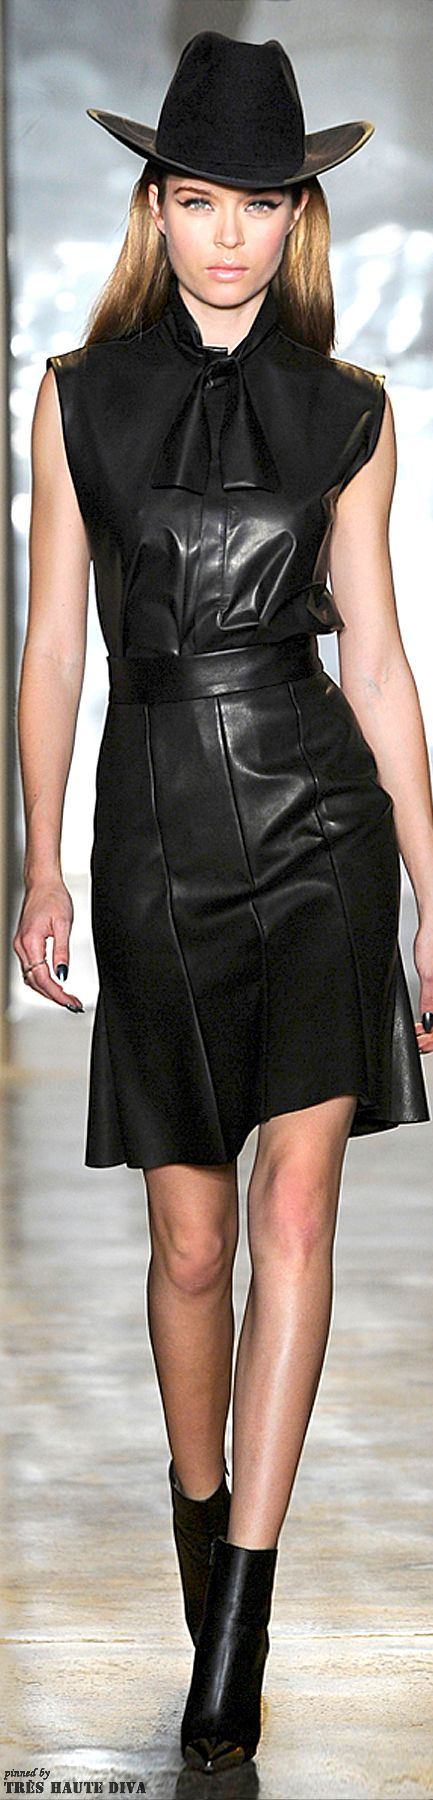 cushnie et ochs fall 2014 rtw new york fashion week. Black Bedroom Furniture Sets. Home Design Ideas